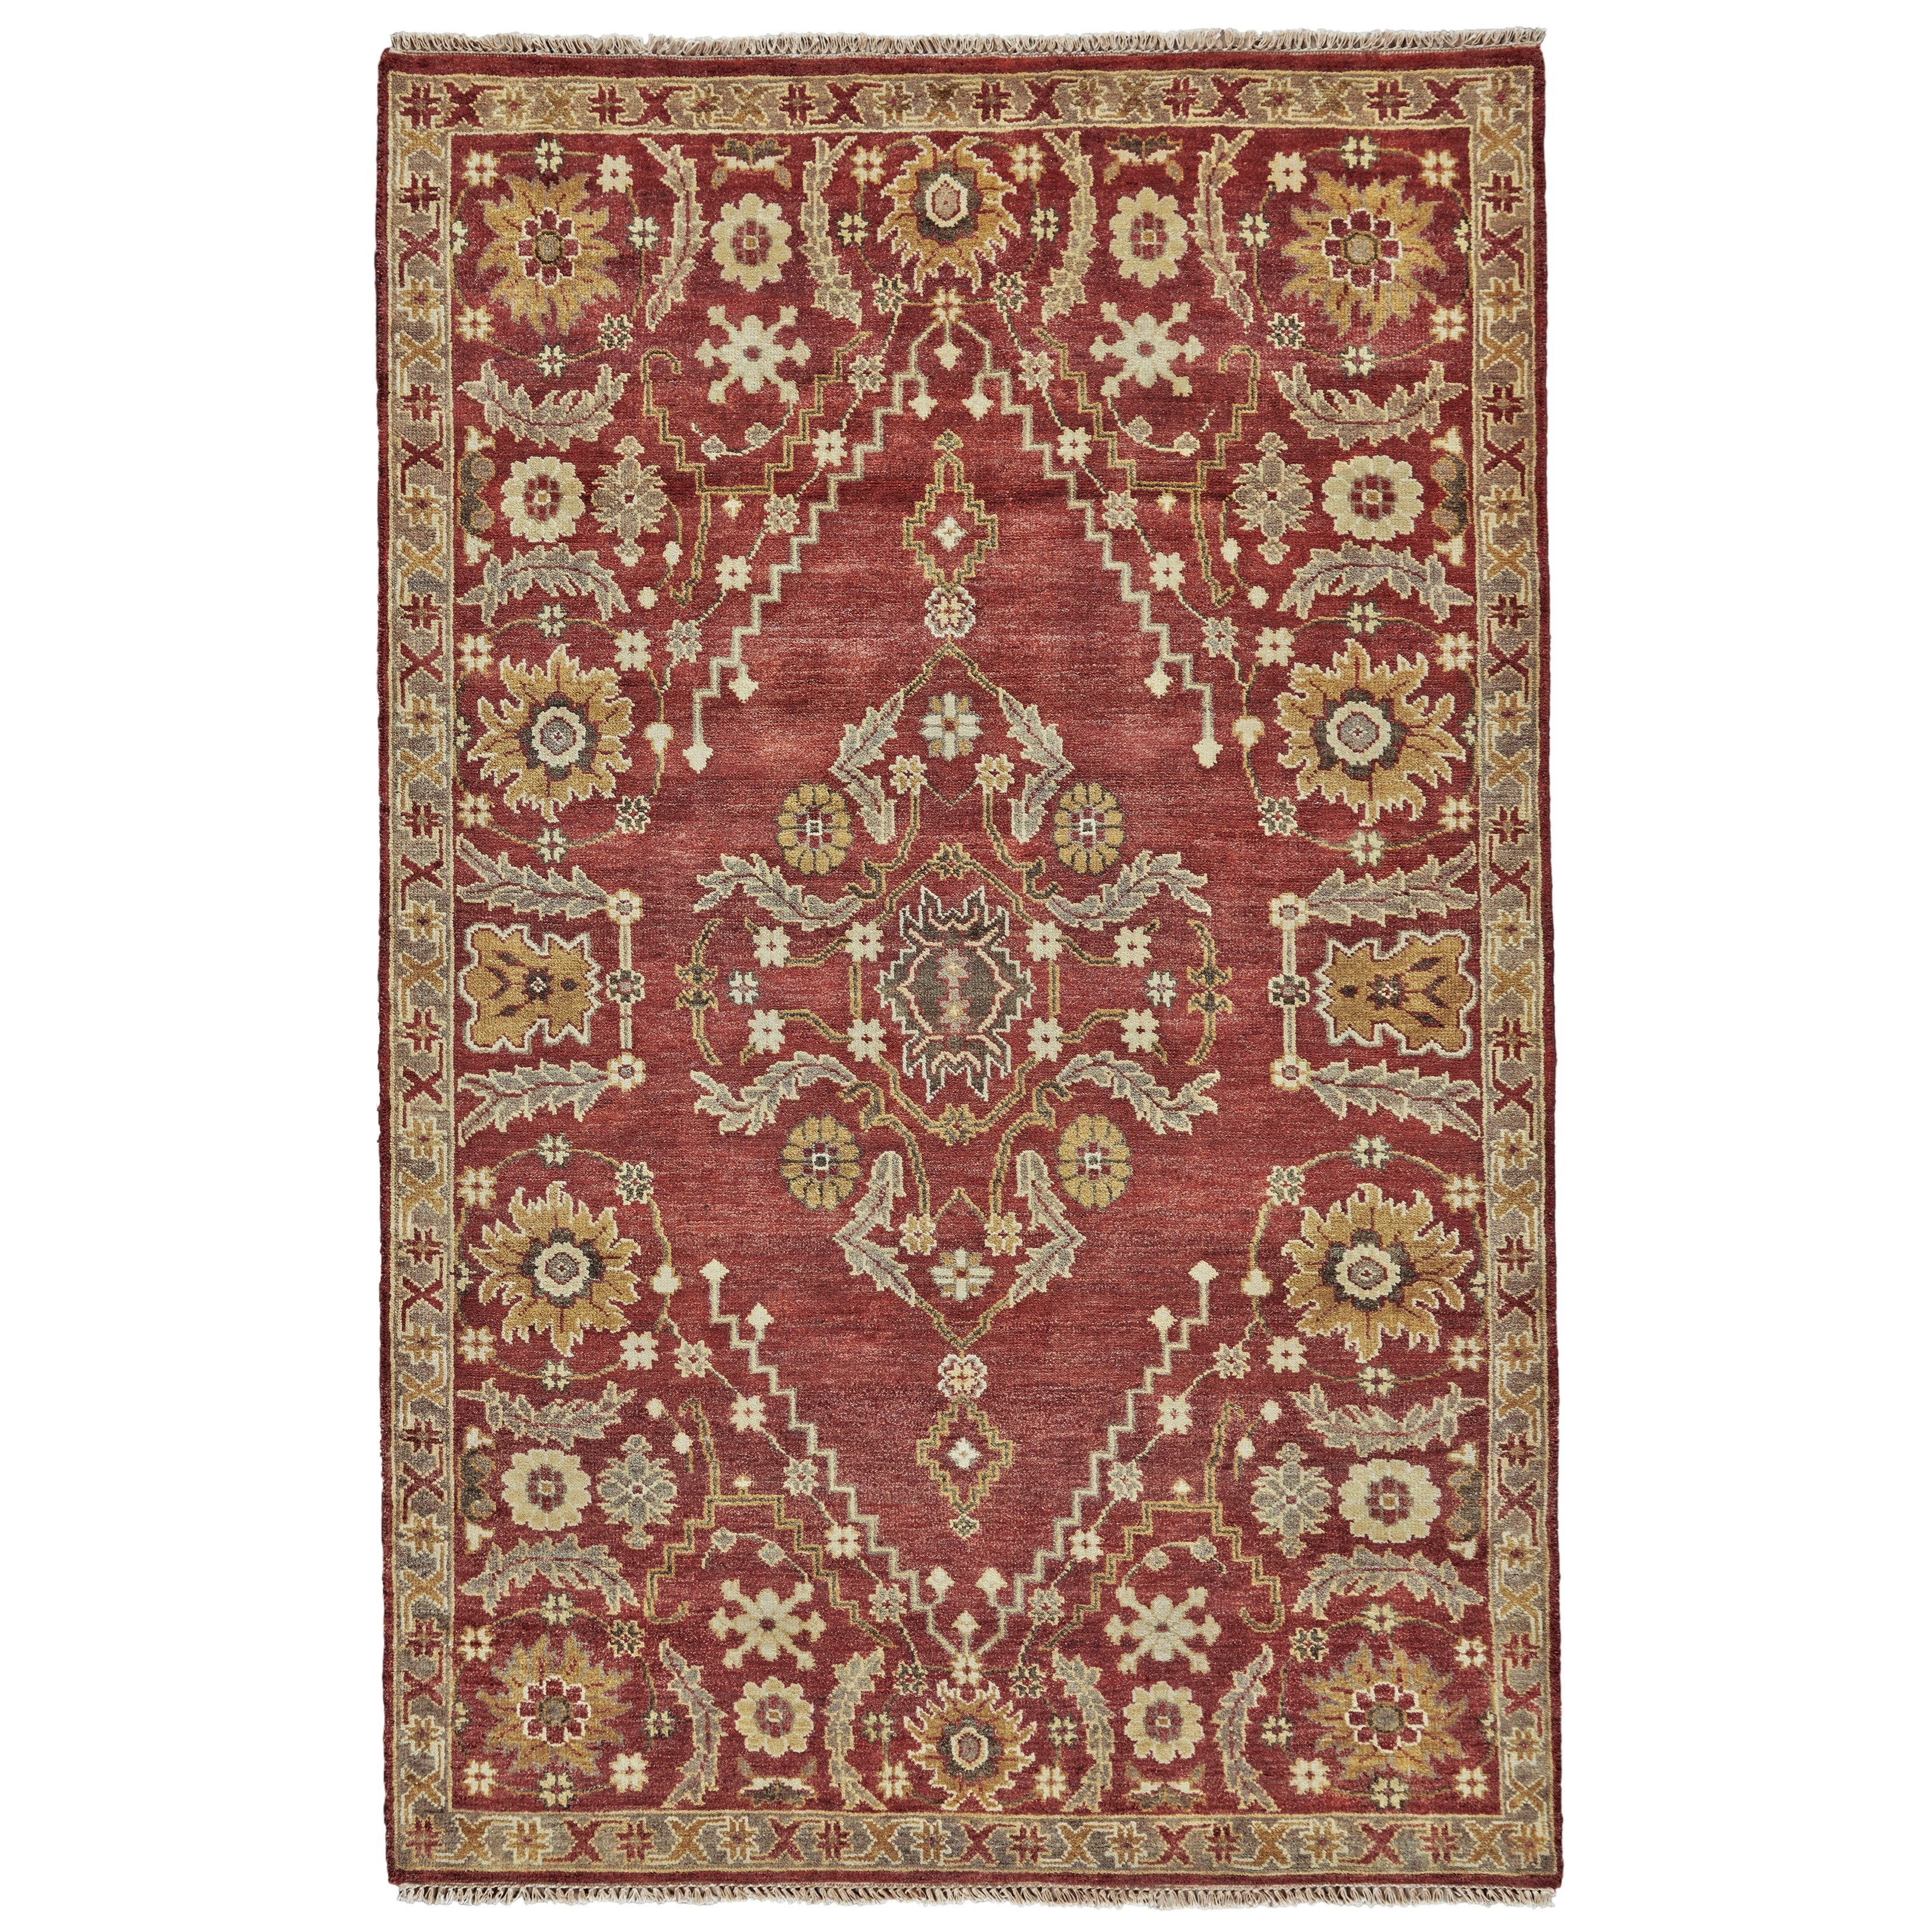 Ashi Rust 2' x 3' Area Rug by Feizy Rugs at Sprintz Furniture